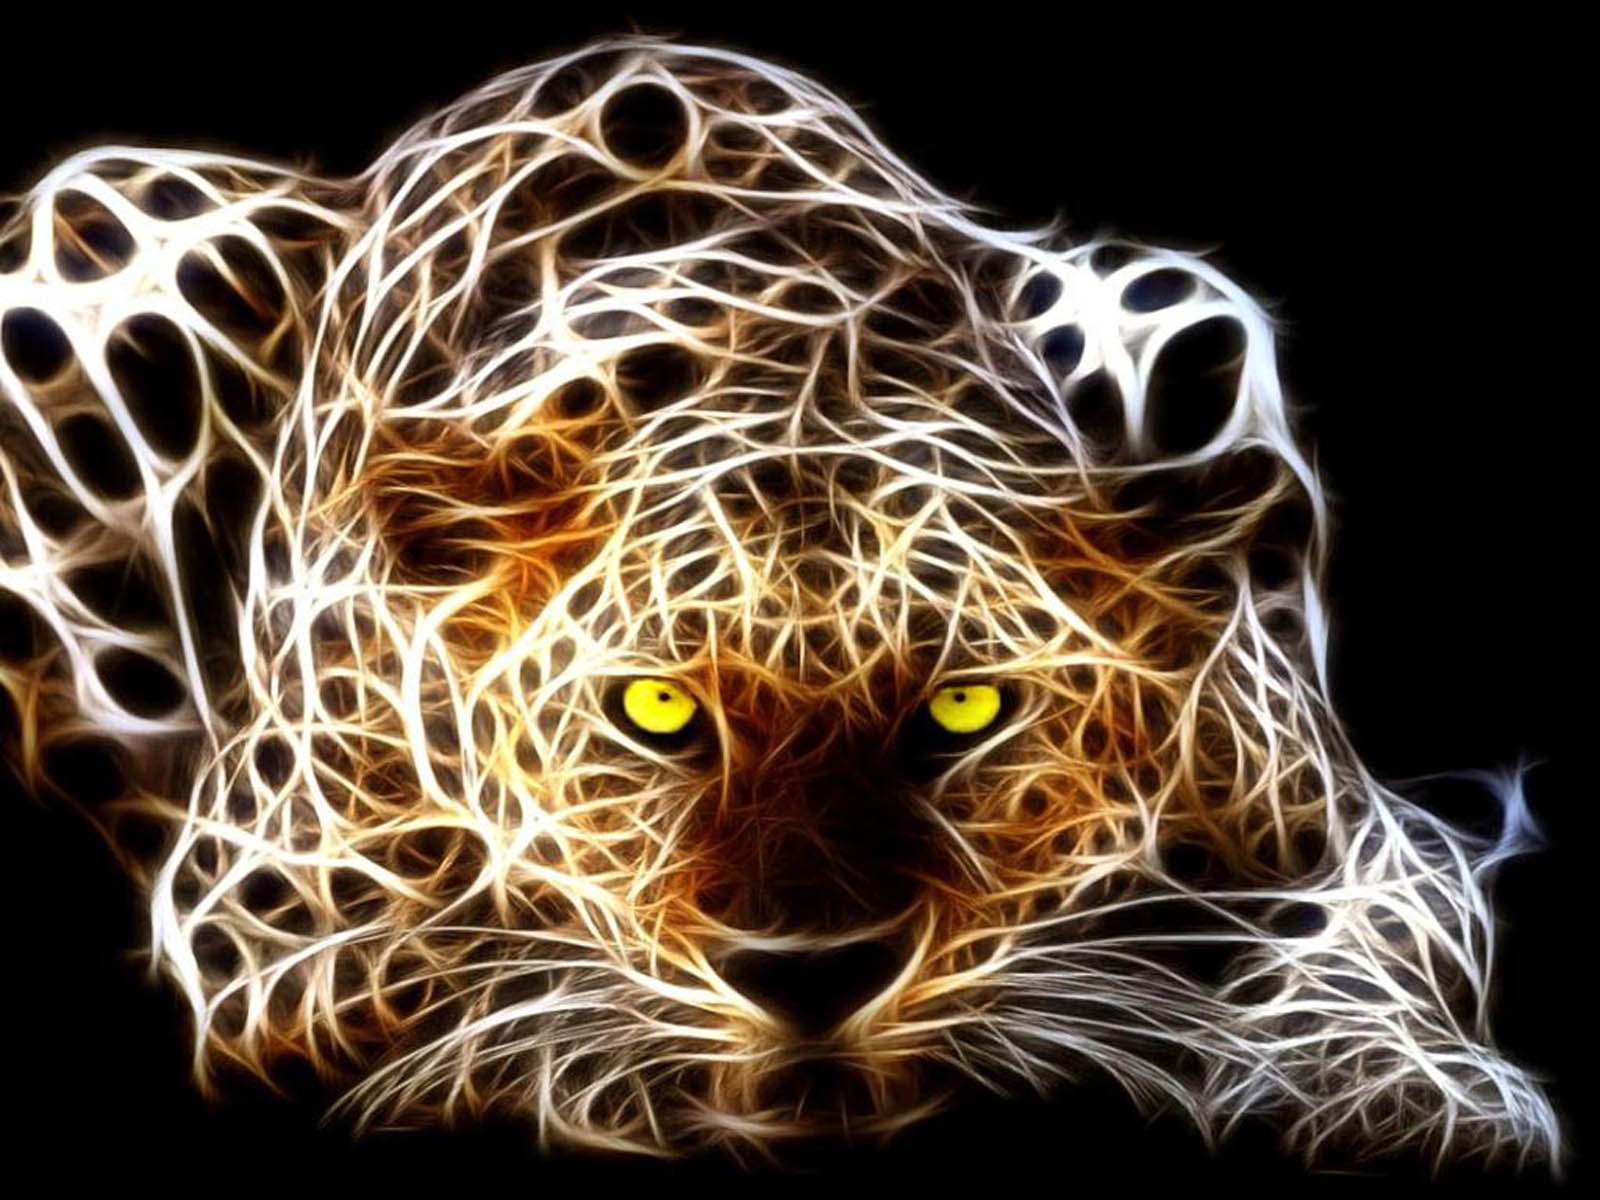 Illuminated Leopard On Wallpaper 3d 4234955 1600x1200 All For